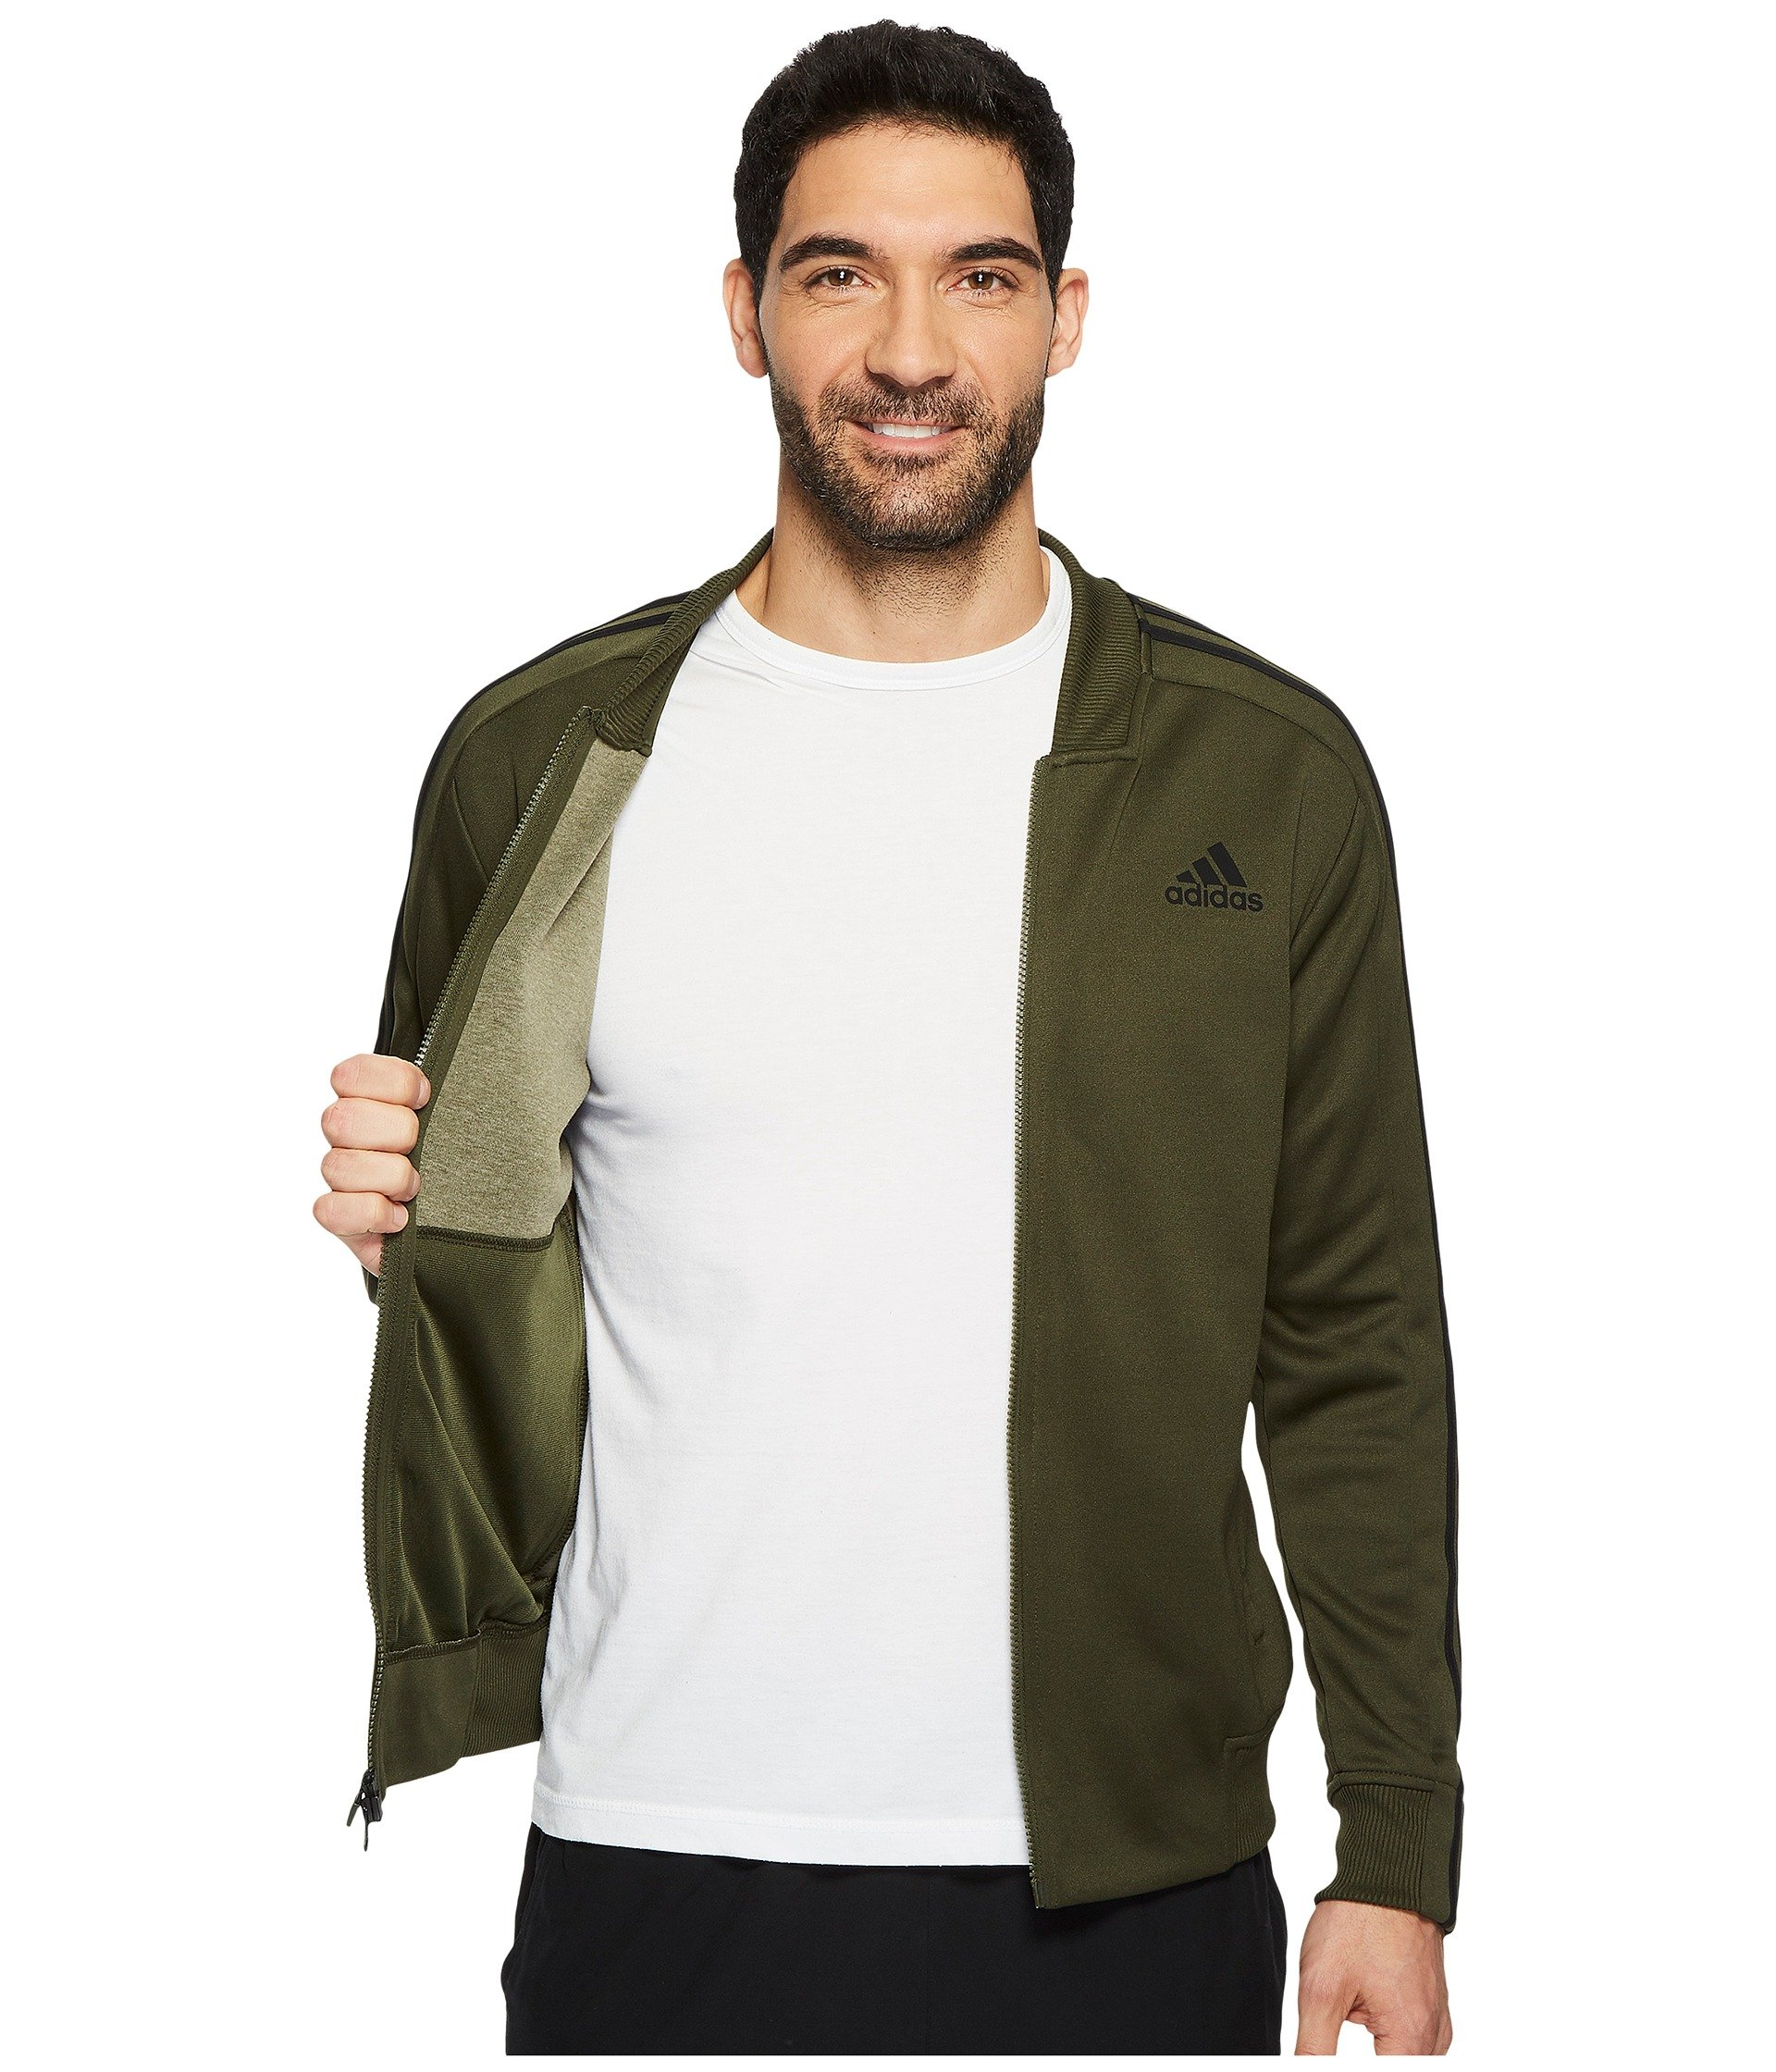 adidas Men's Sport ID Track Bomber Jacket Night Cargo Small by adidas (Image #6)